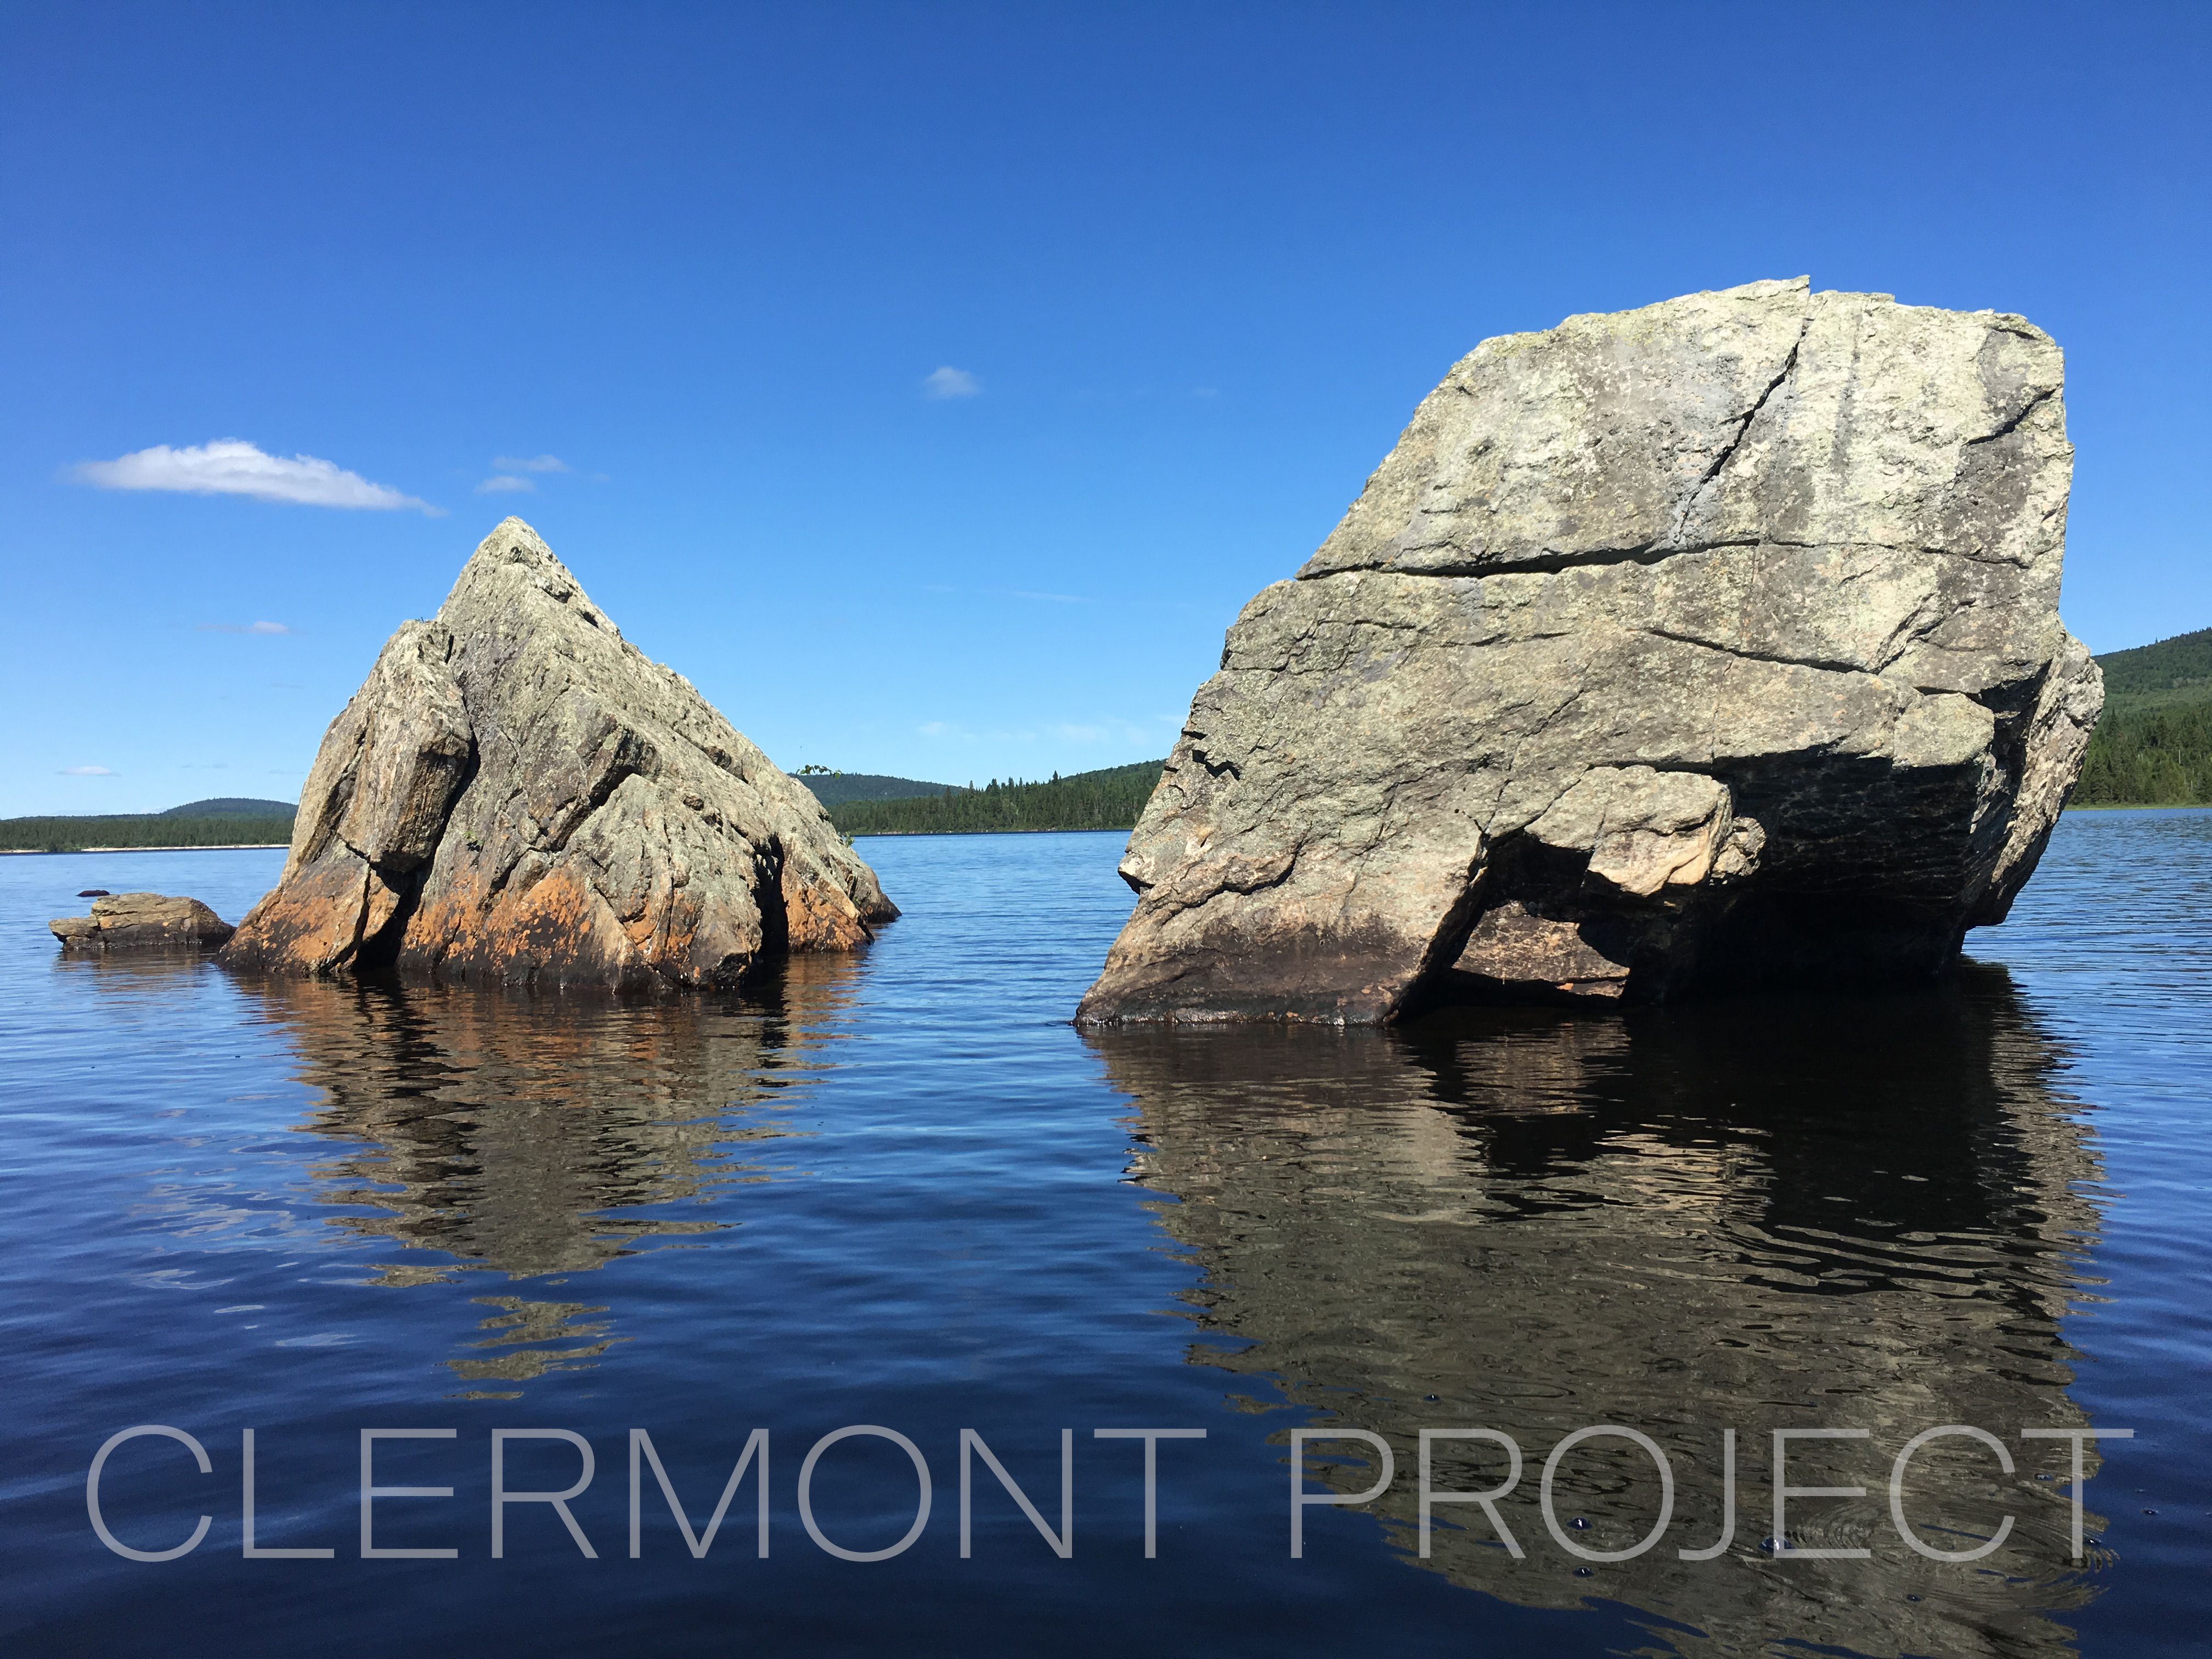 Clermont Project